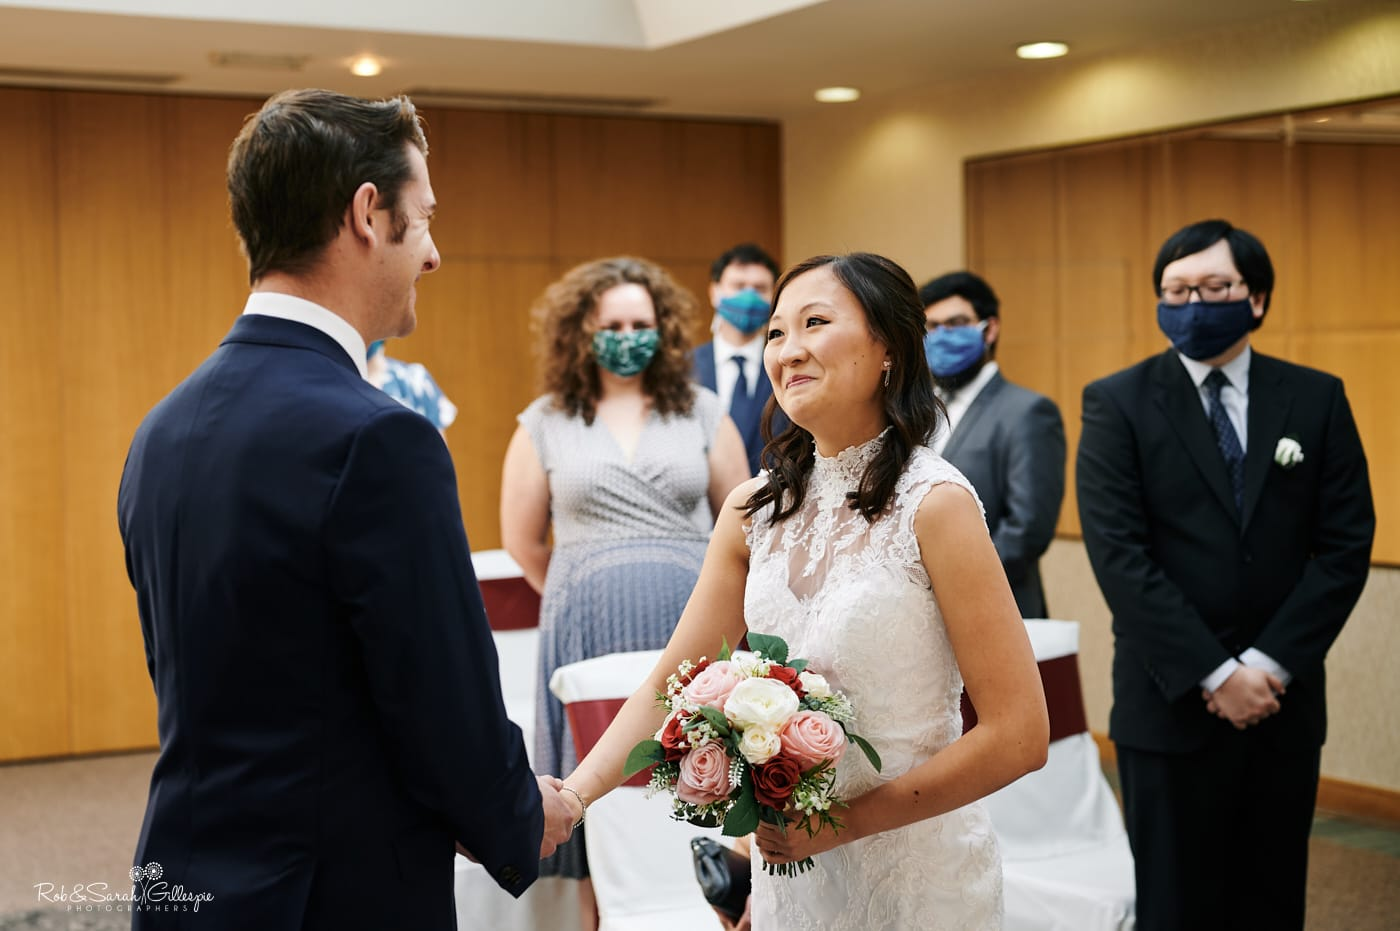 Bride and groom emotional as they exchange wedding vows as guests in facemasks watch